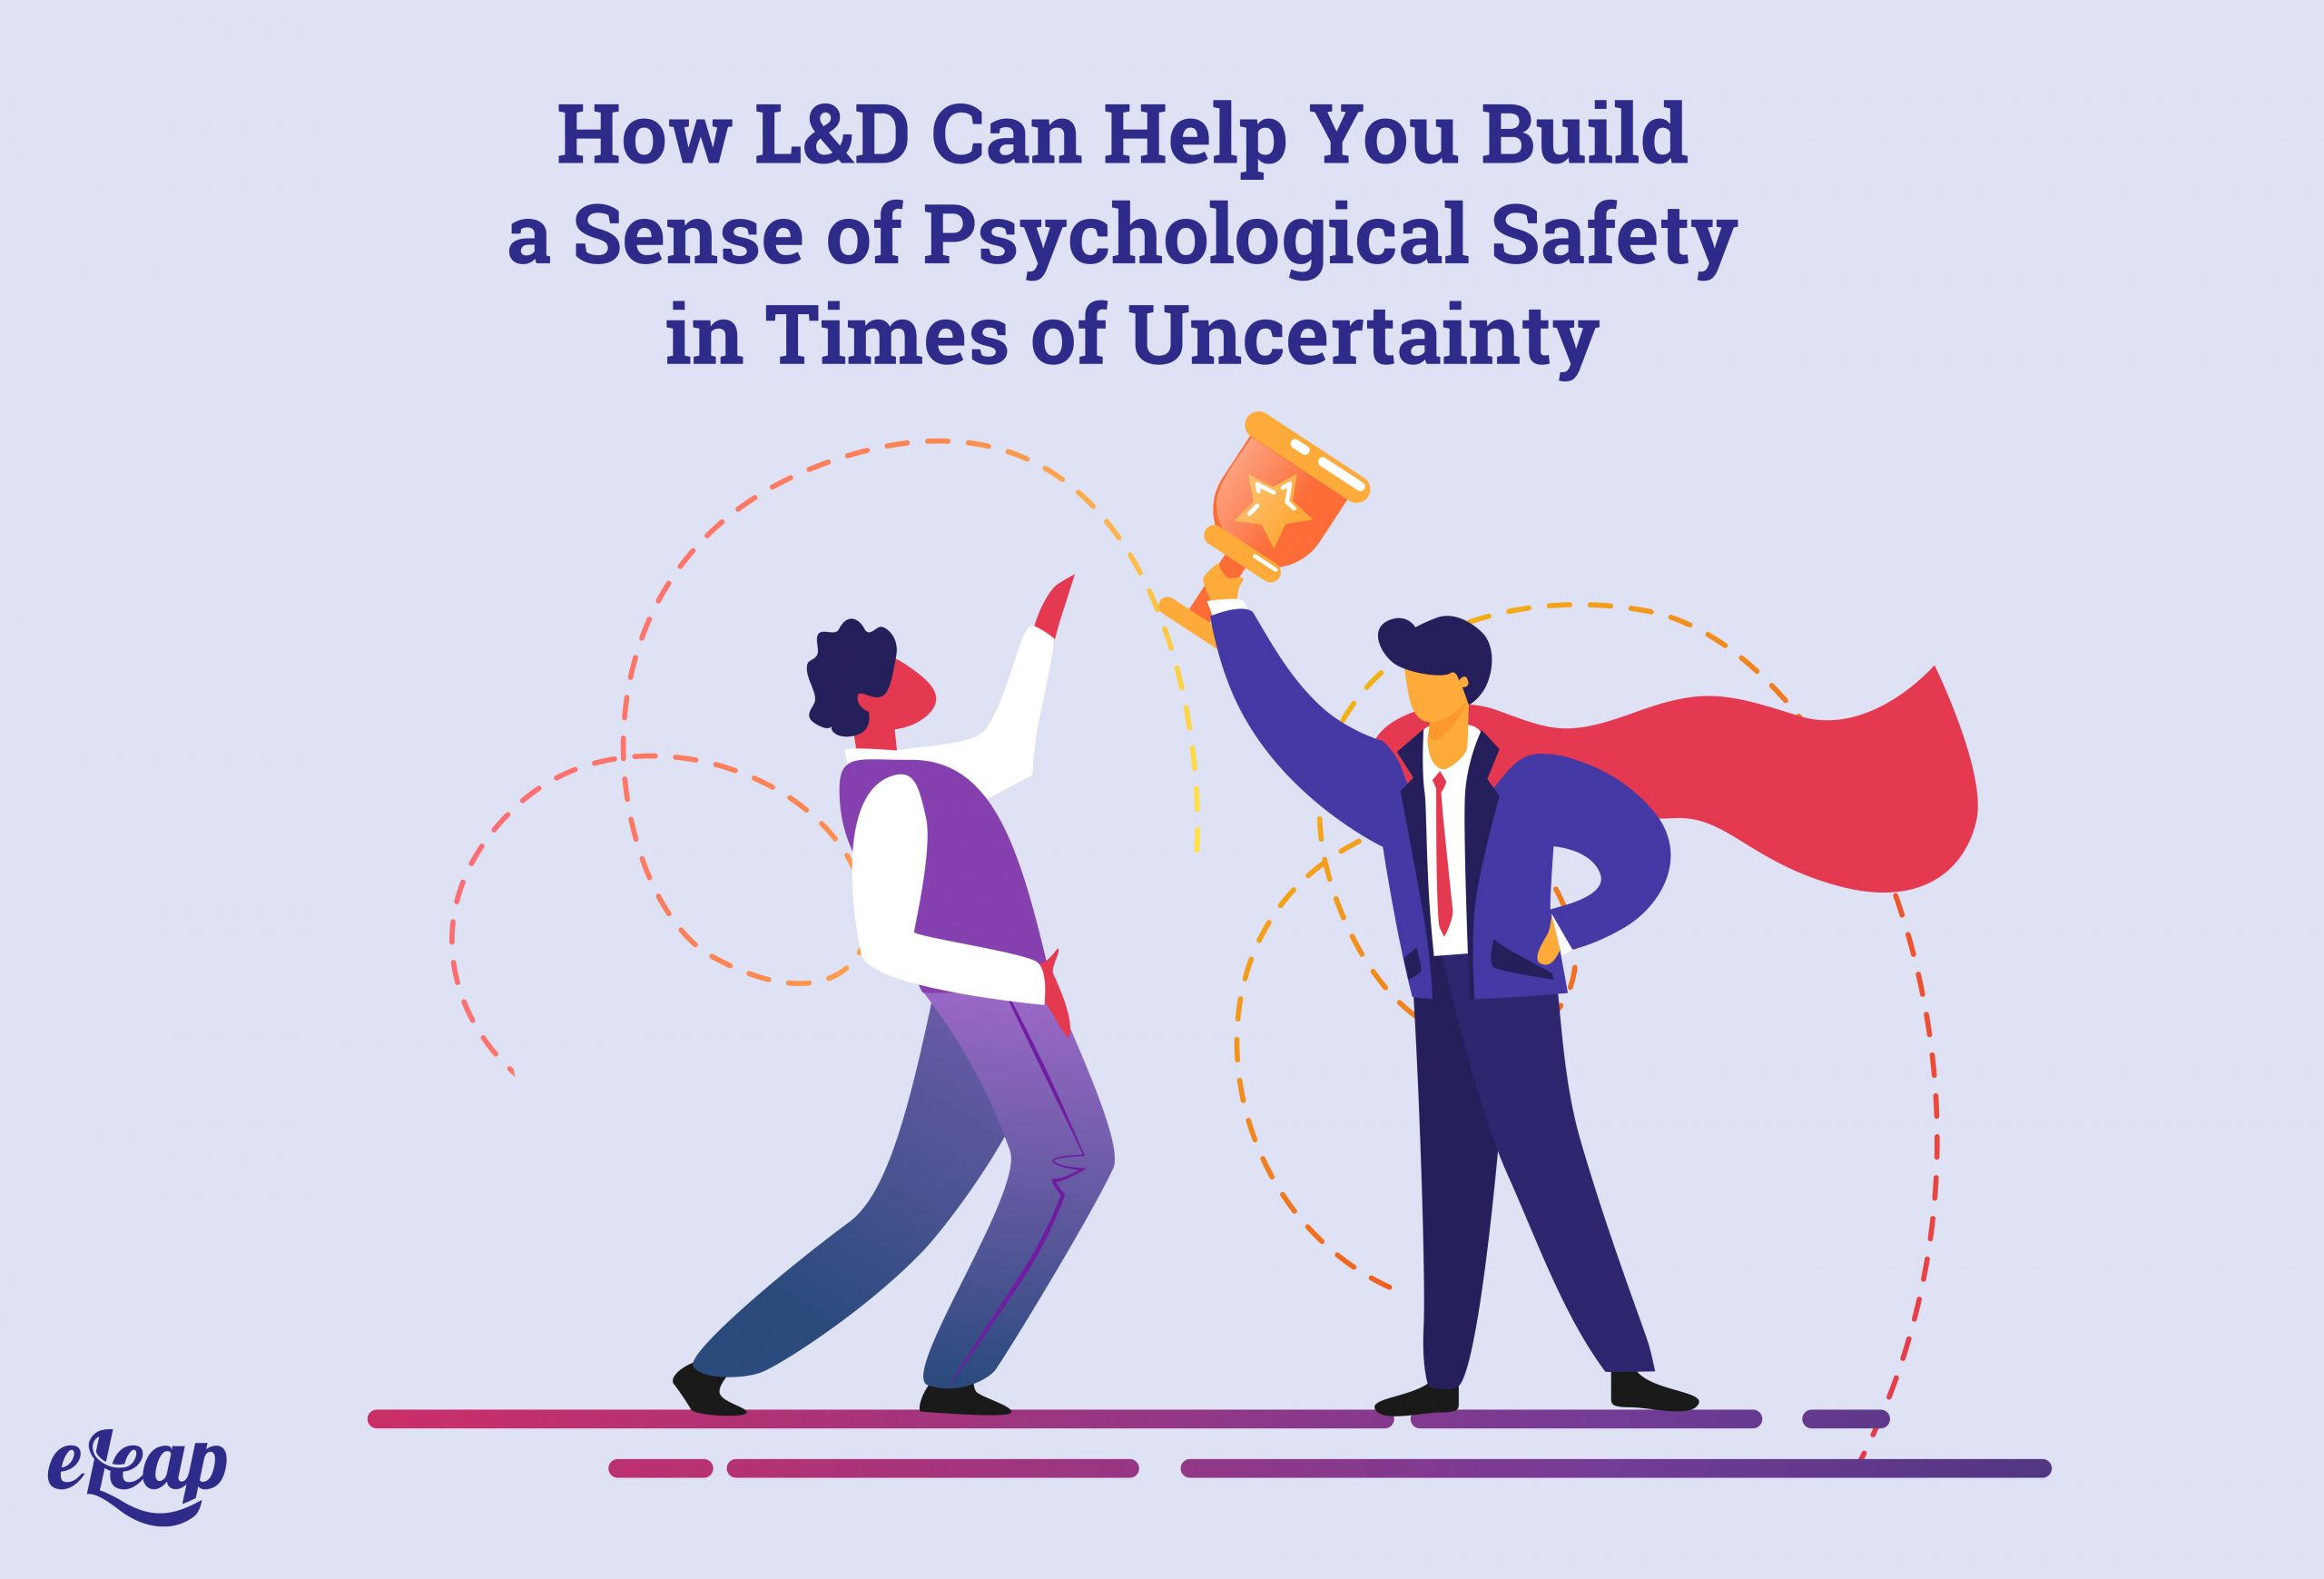 How L&D Can Help You Build a Sense of Psychological Safety in Times of Uncertainty